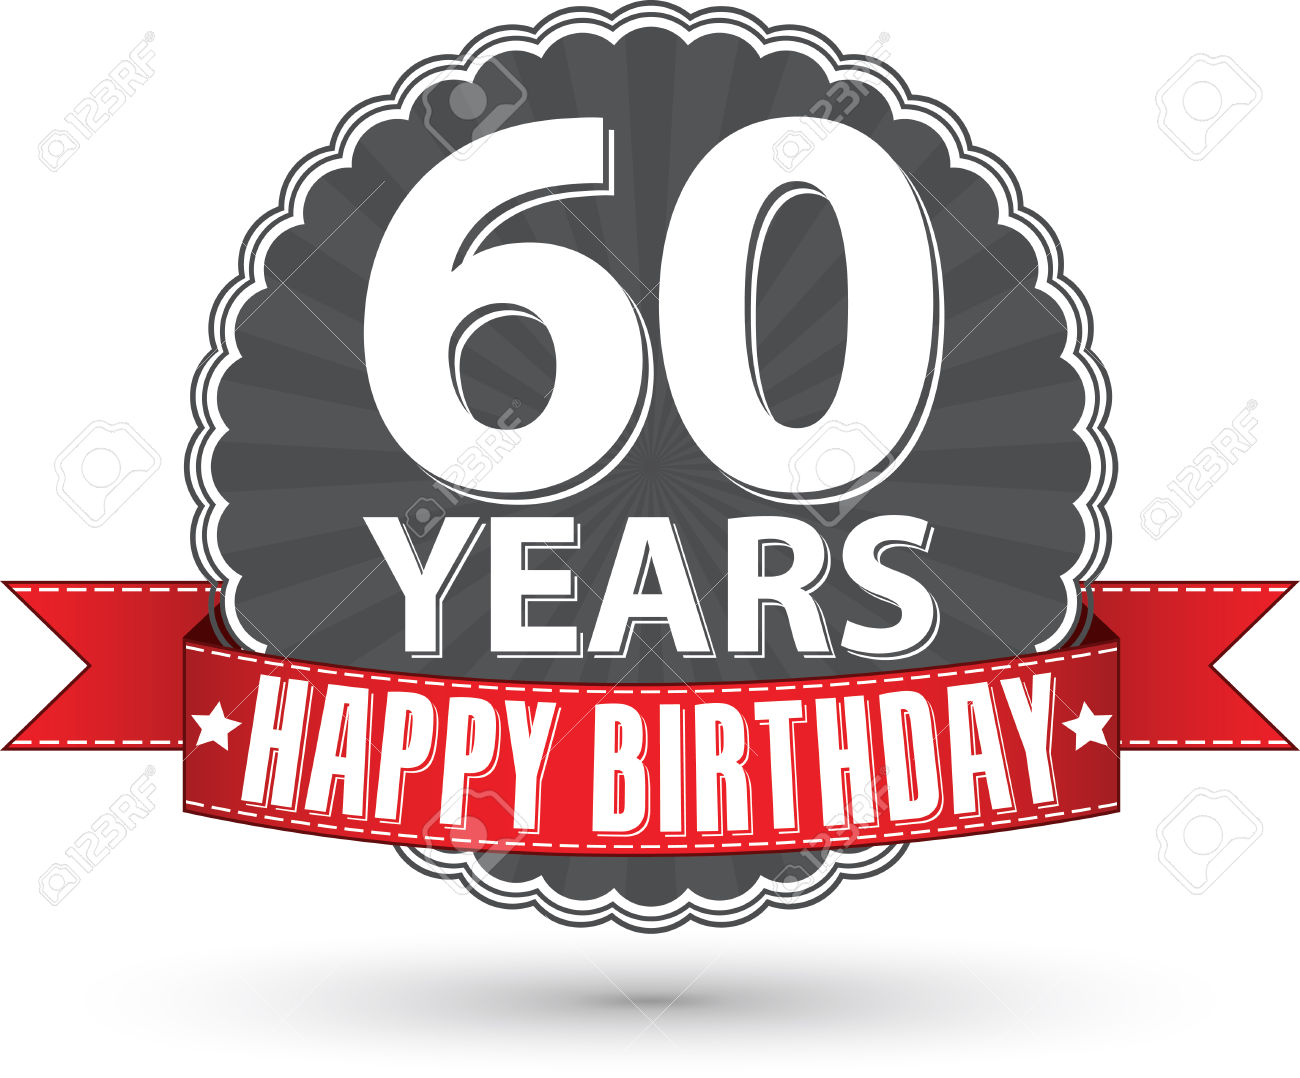 36053663-Happy-birthday-60-years-retro-label-with-red-ribbon-Stock-Vector.jpg